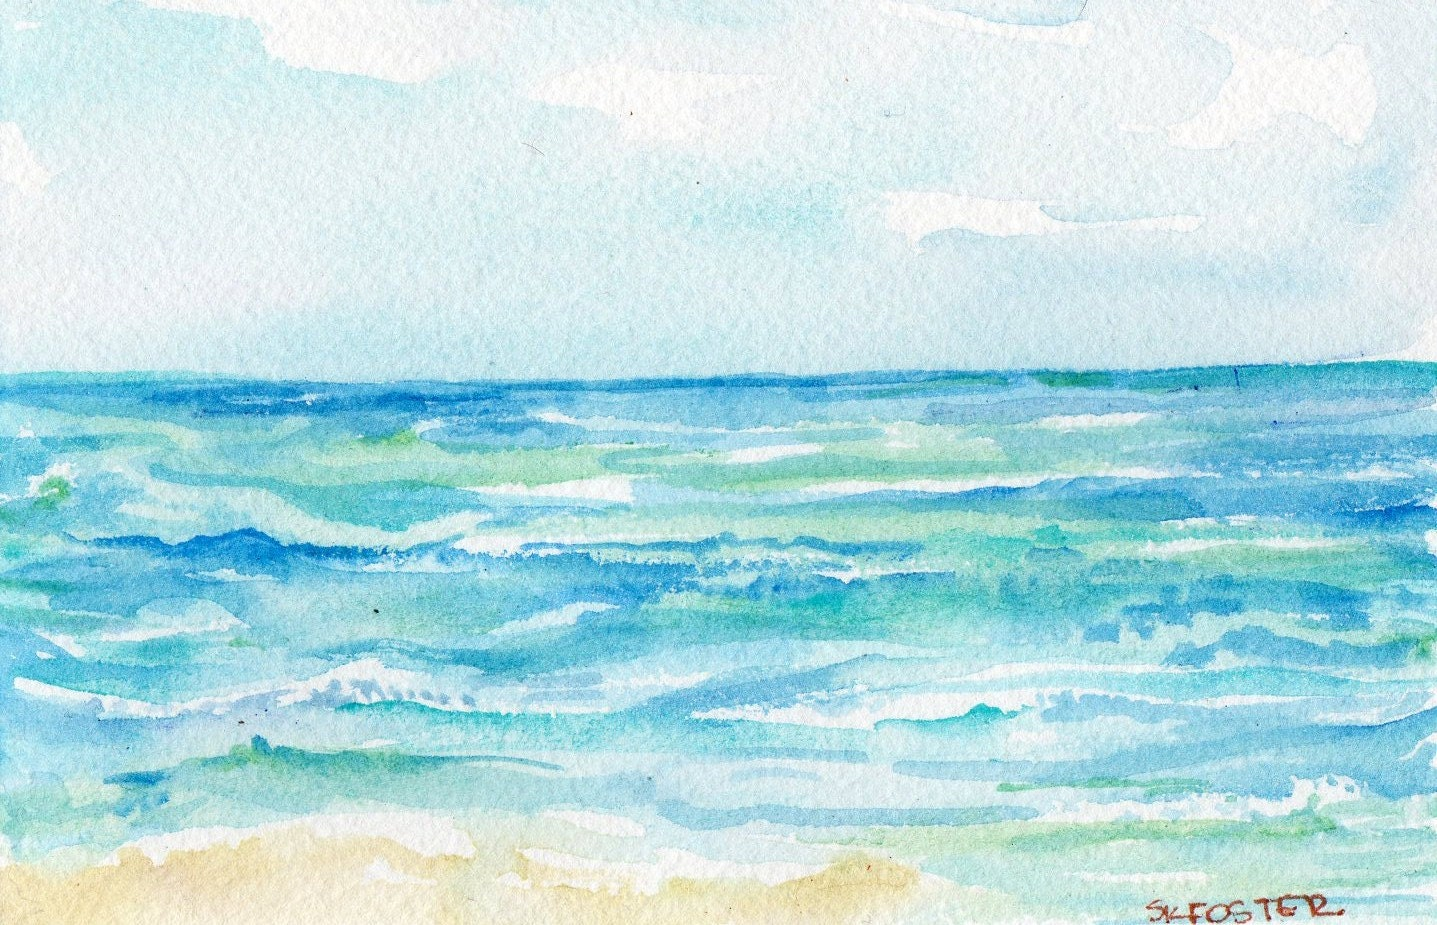 Original Ocean waves watercolor 4 by 6 inches - SharonFosterArt